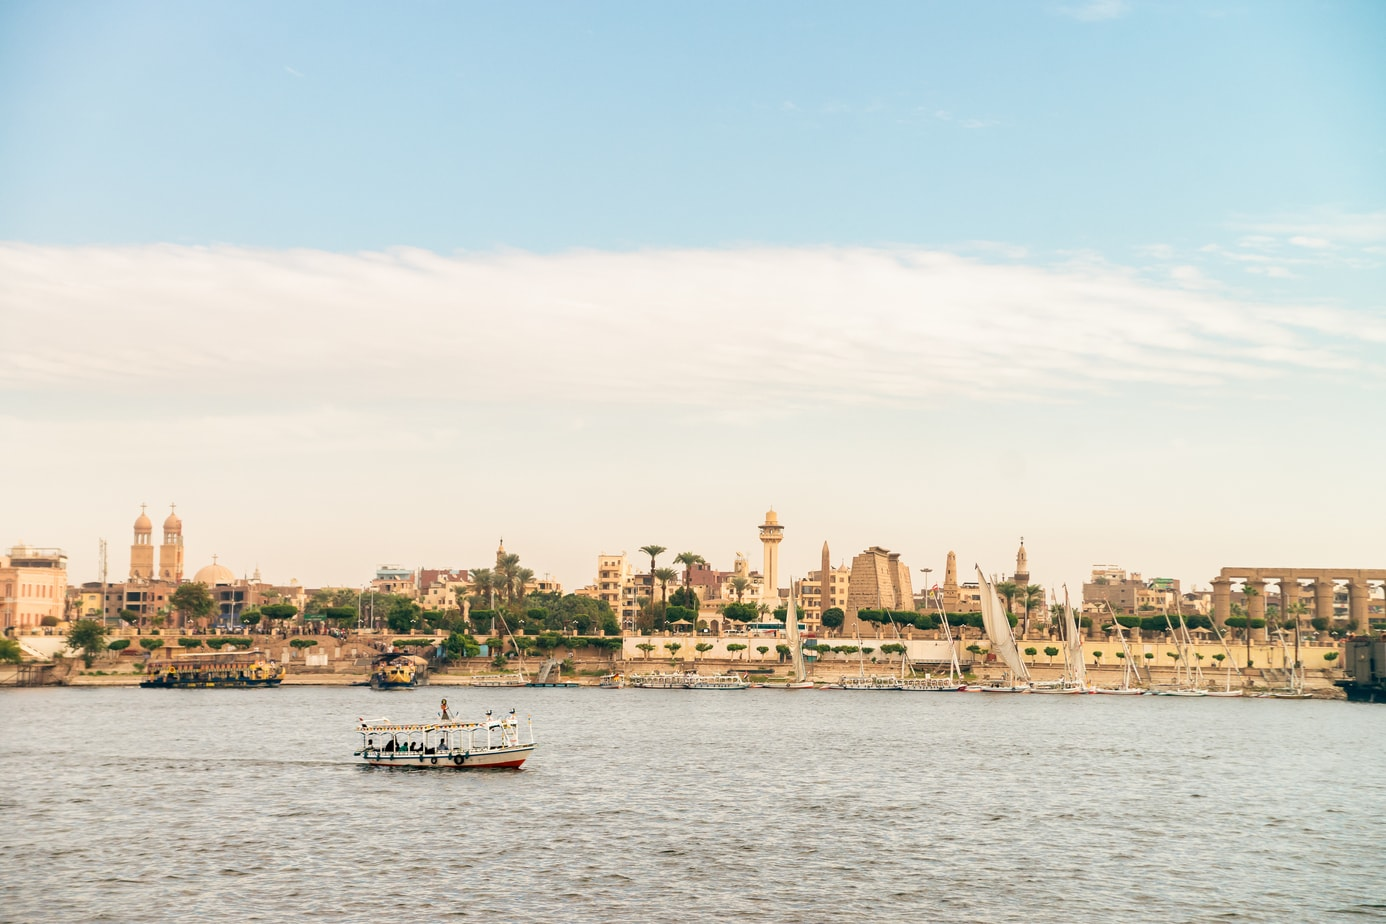 Luxor City From The Nile River